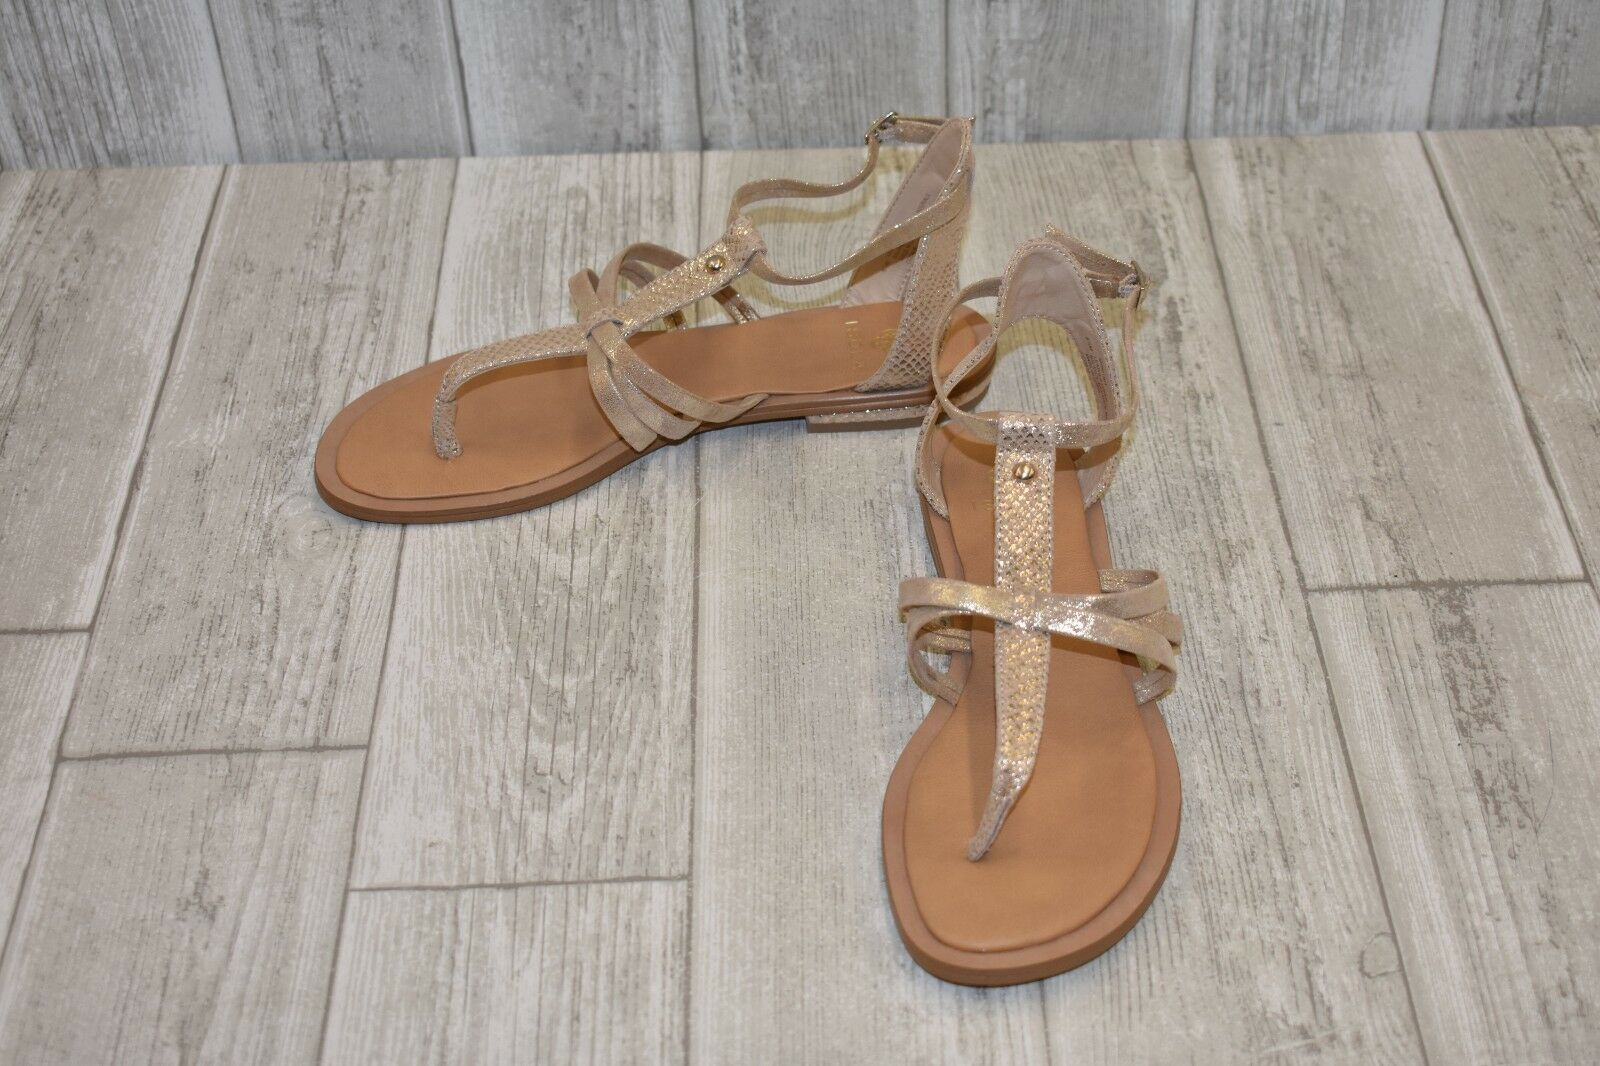 Isola Marcia Sandals-Women's size 8.5 M gold